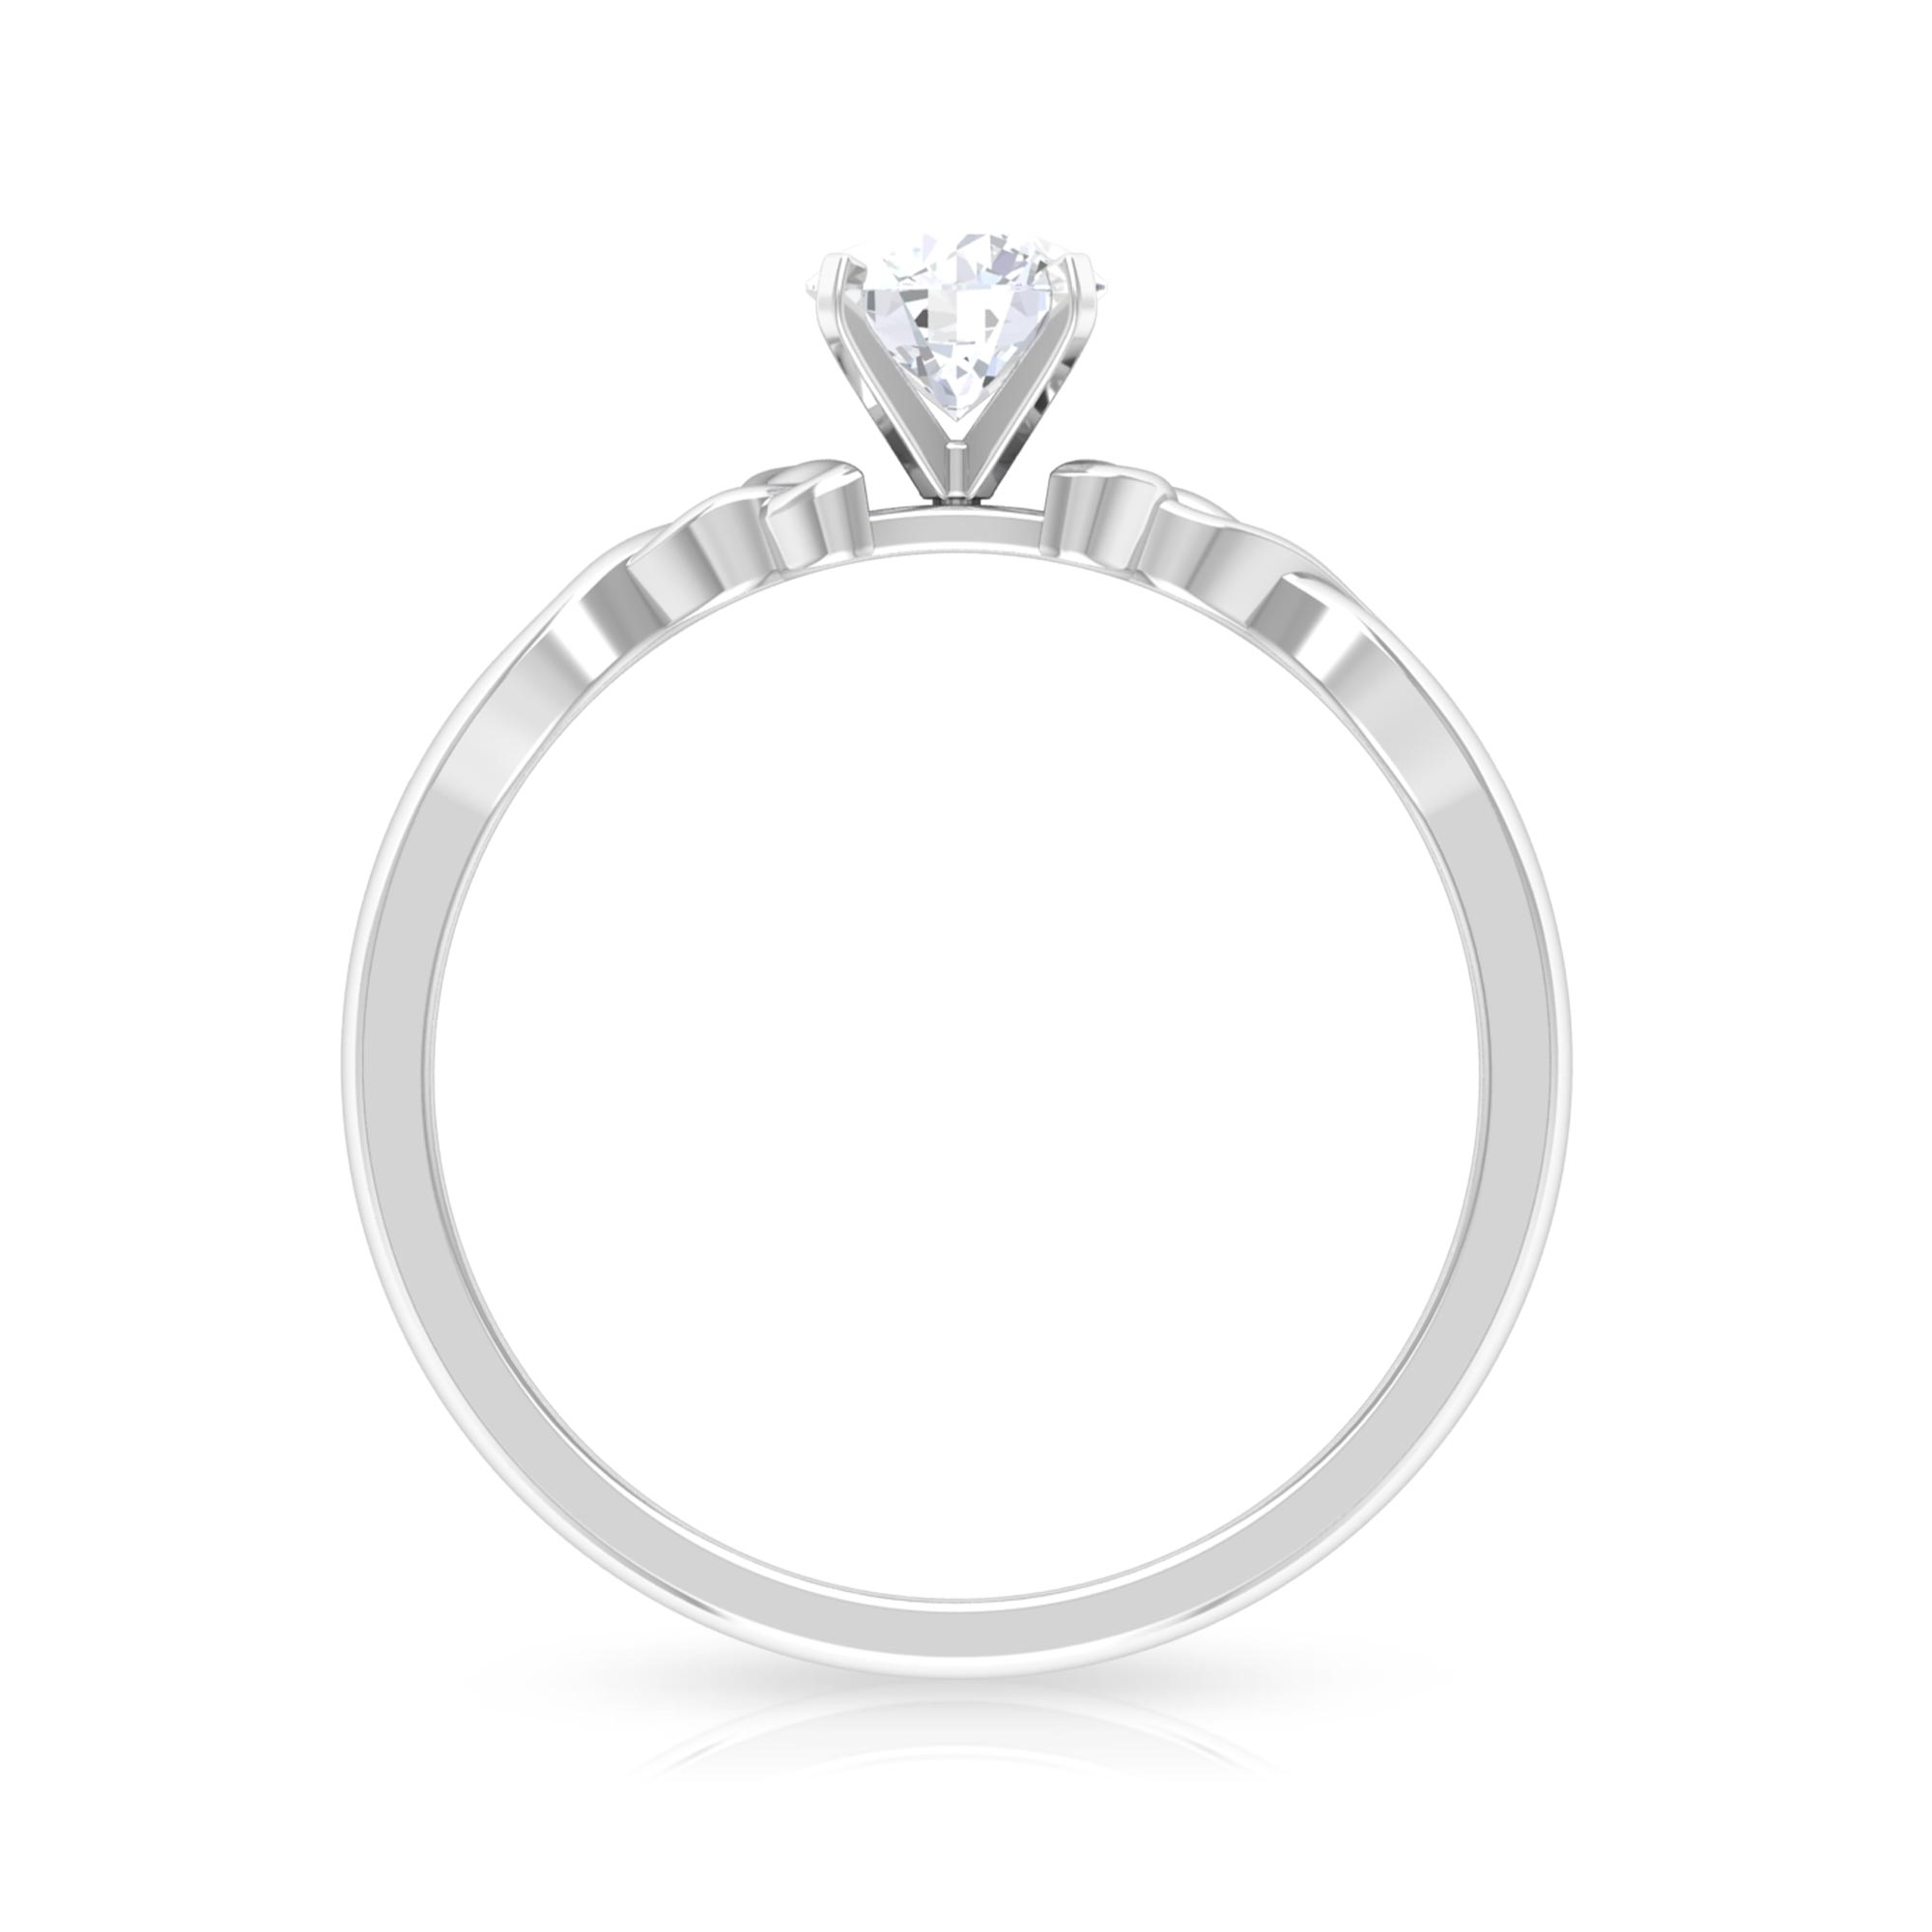 5 MM Round Cut Diamond Solitaire Love Ring in Square Prong Setting